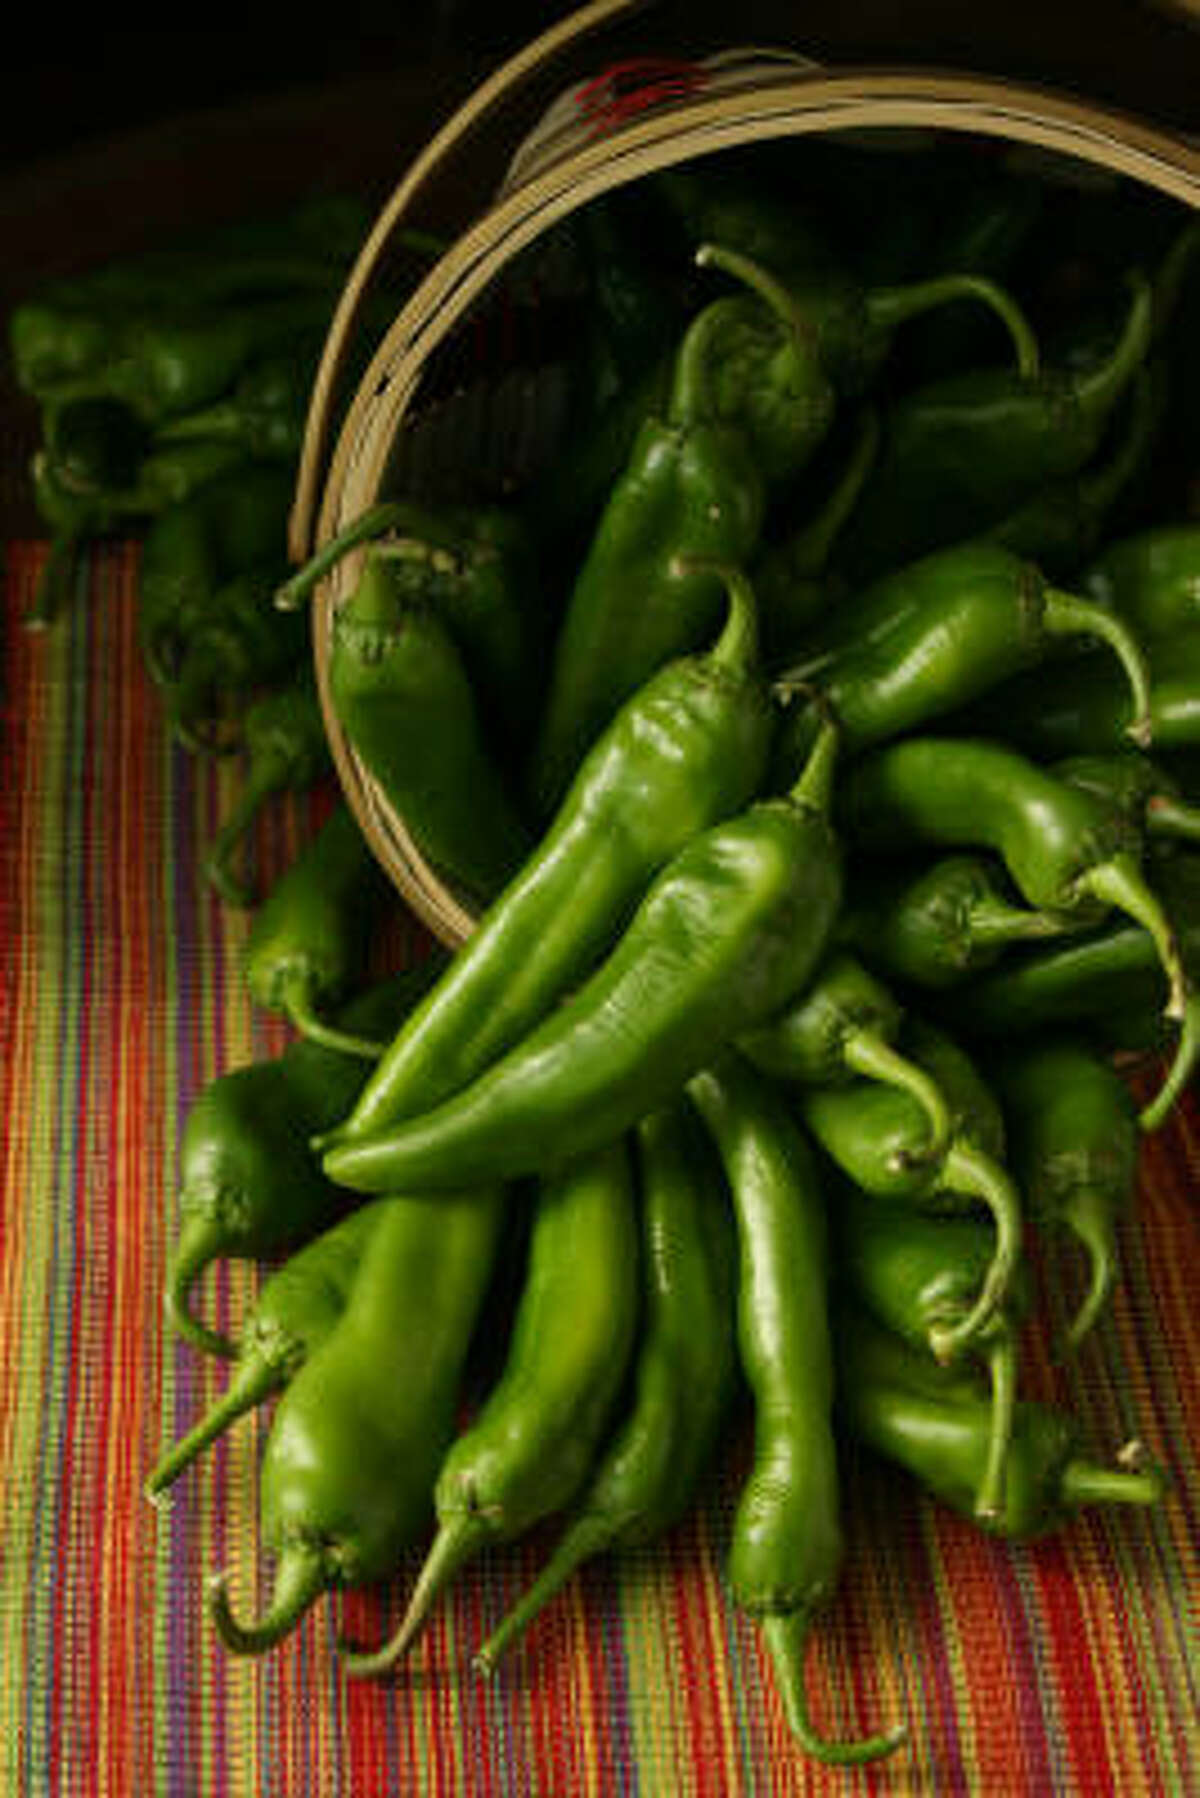 The 2008 crop of Hatch chiles has arrived from New Mexico.